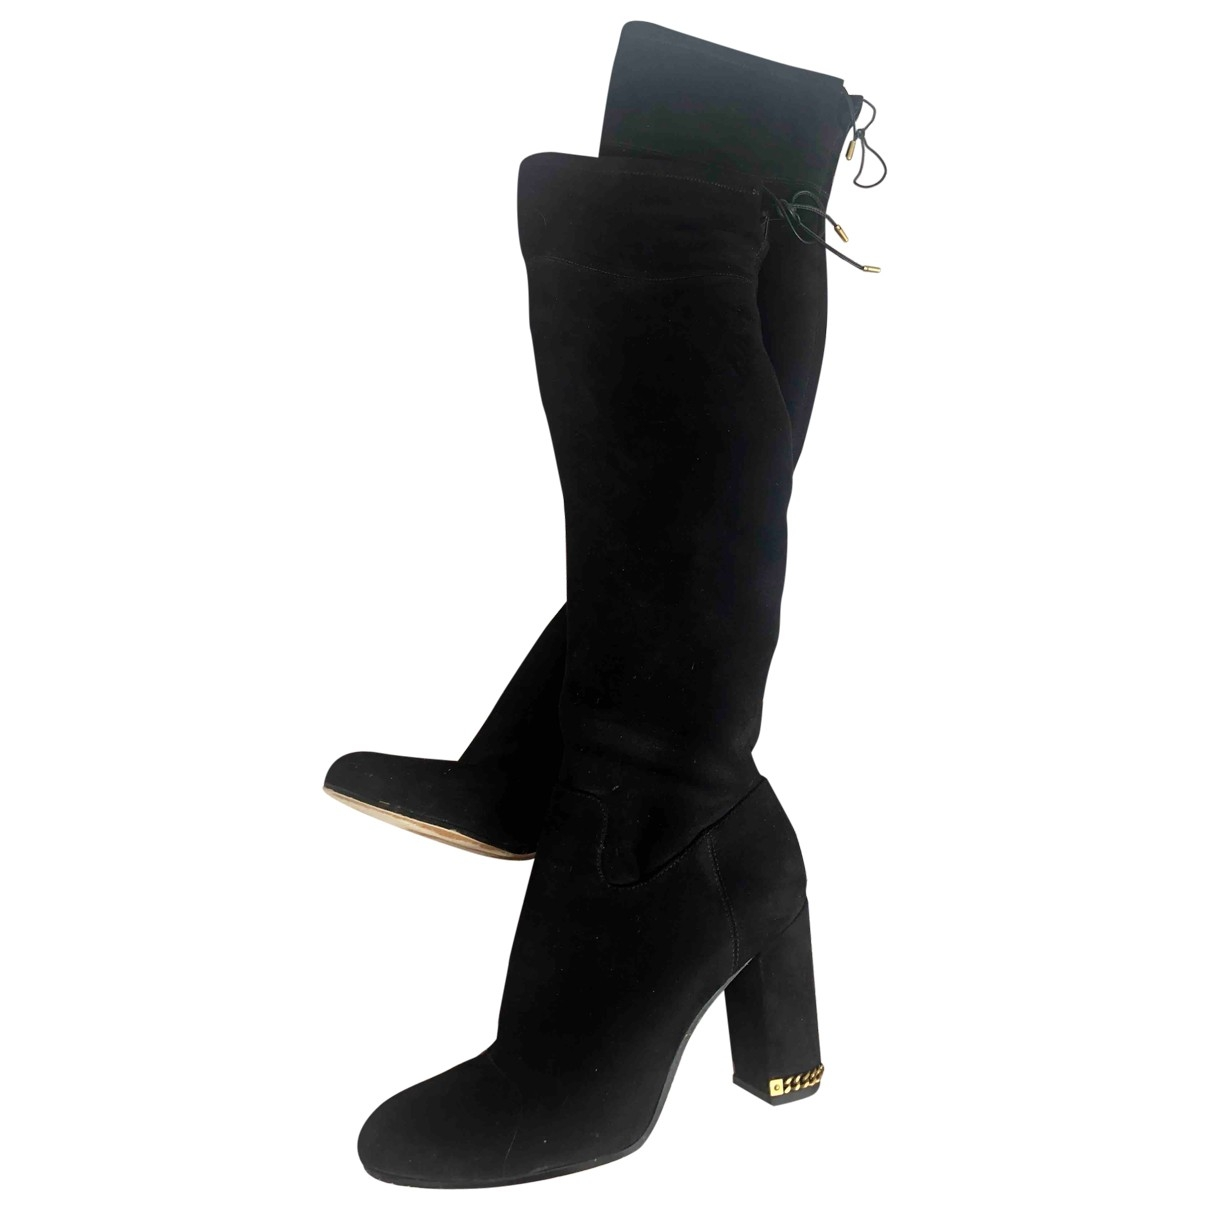 Michael Kors \N Black Suede Boots for Women 8.5 US